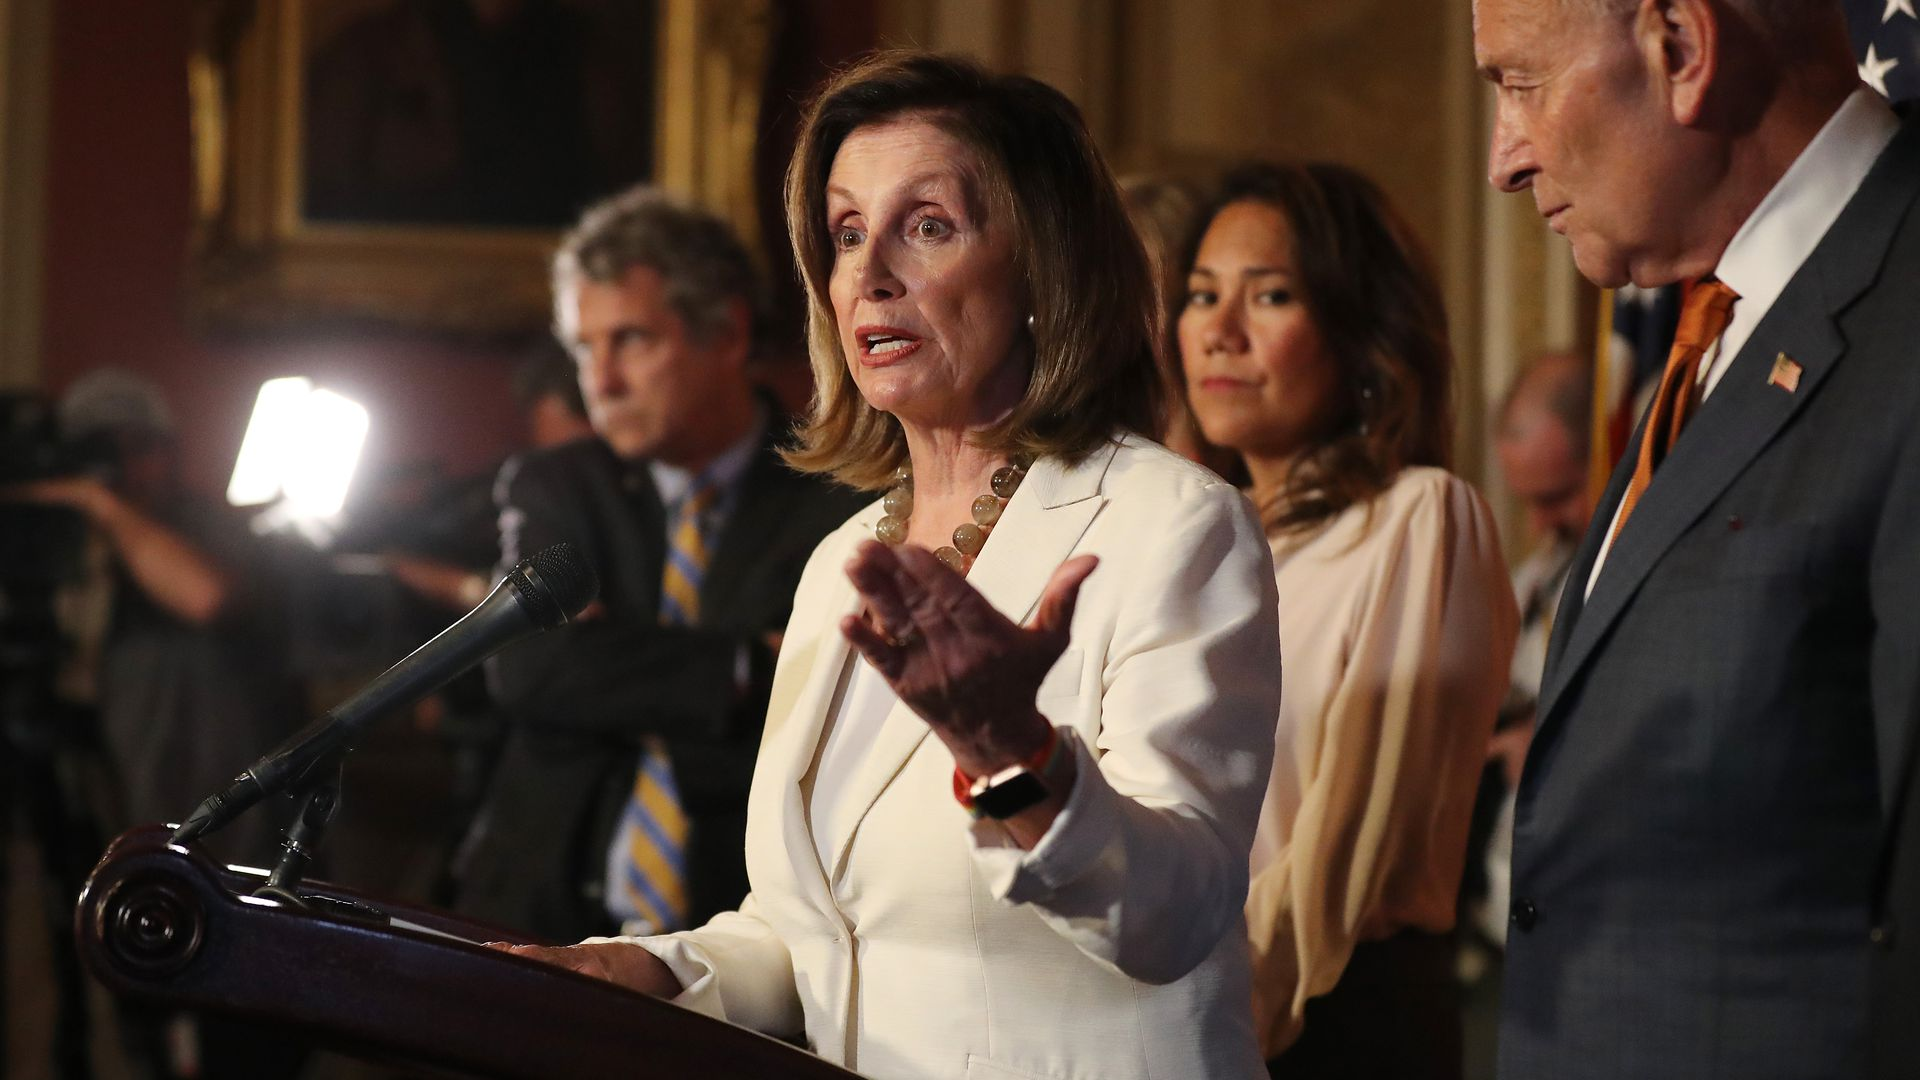 Nancy Pelosi gestures at a press conference